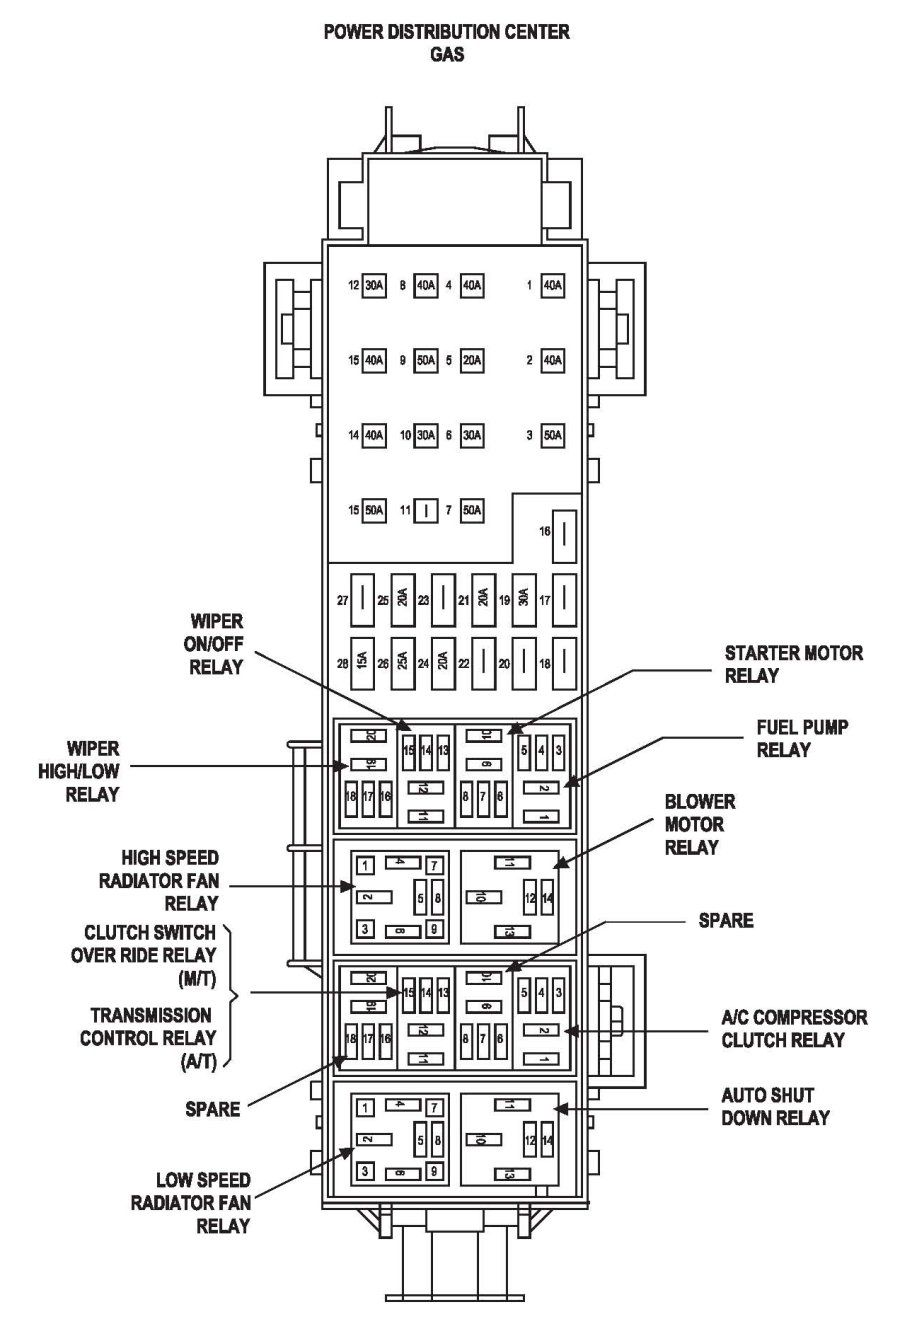 hight resolution of 2003 jeep liberty fuse box wiring diagram name 03 liberty fuse box diagram 03 liberty fuse diagram